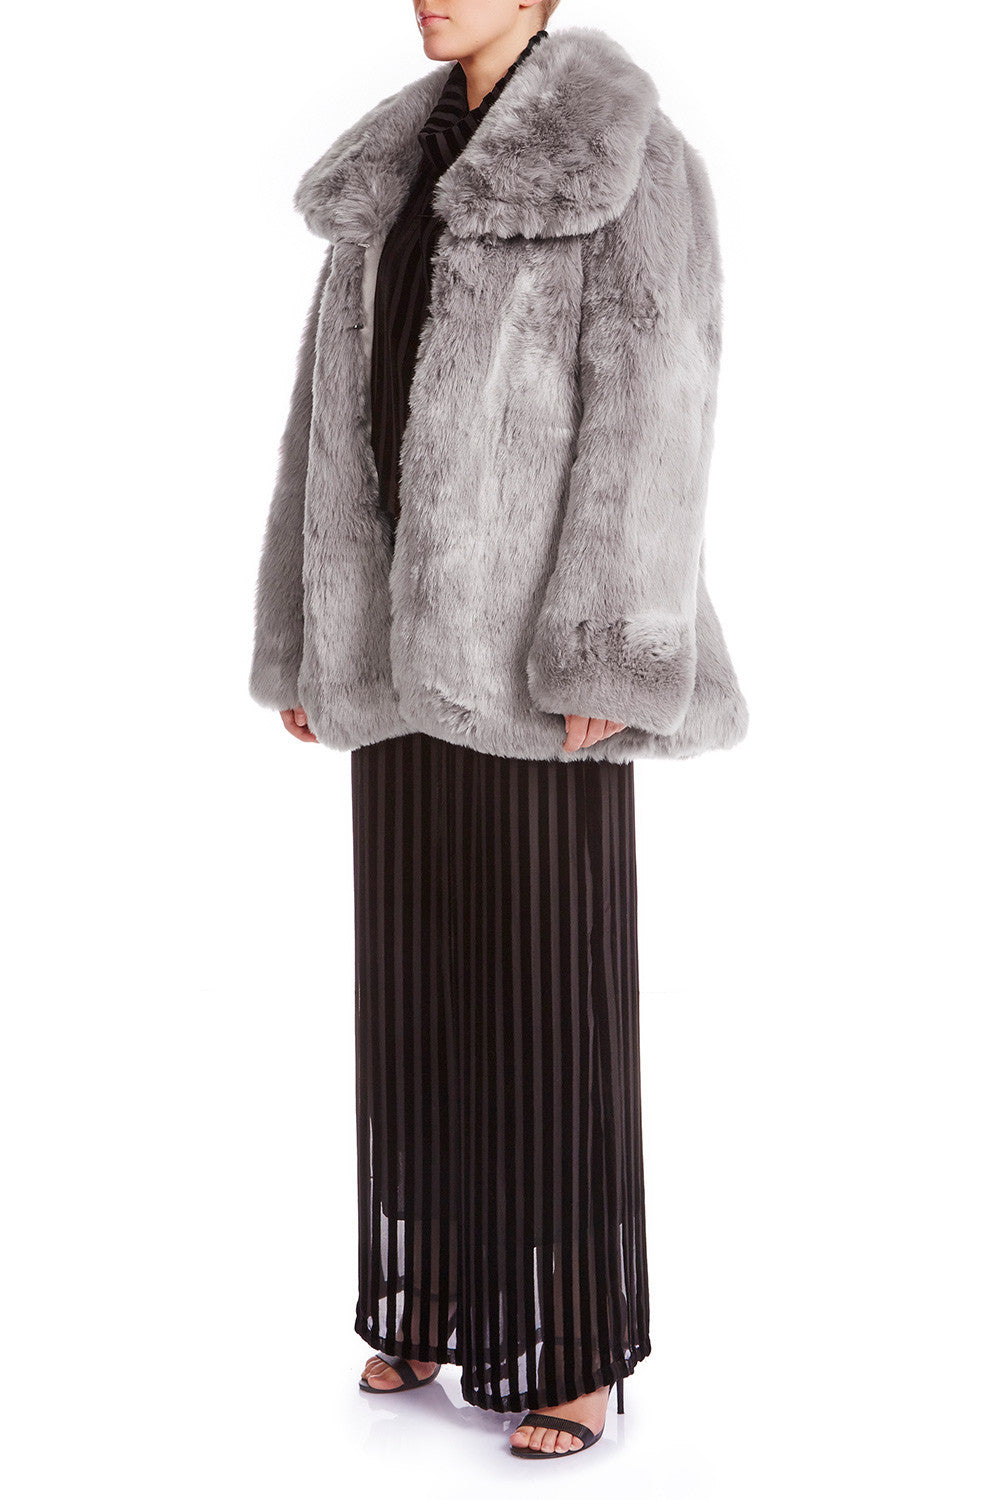 SKYE Oversized Faux Fur Coat - HAUS OF SONG